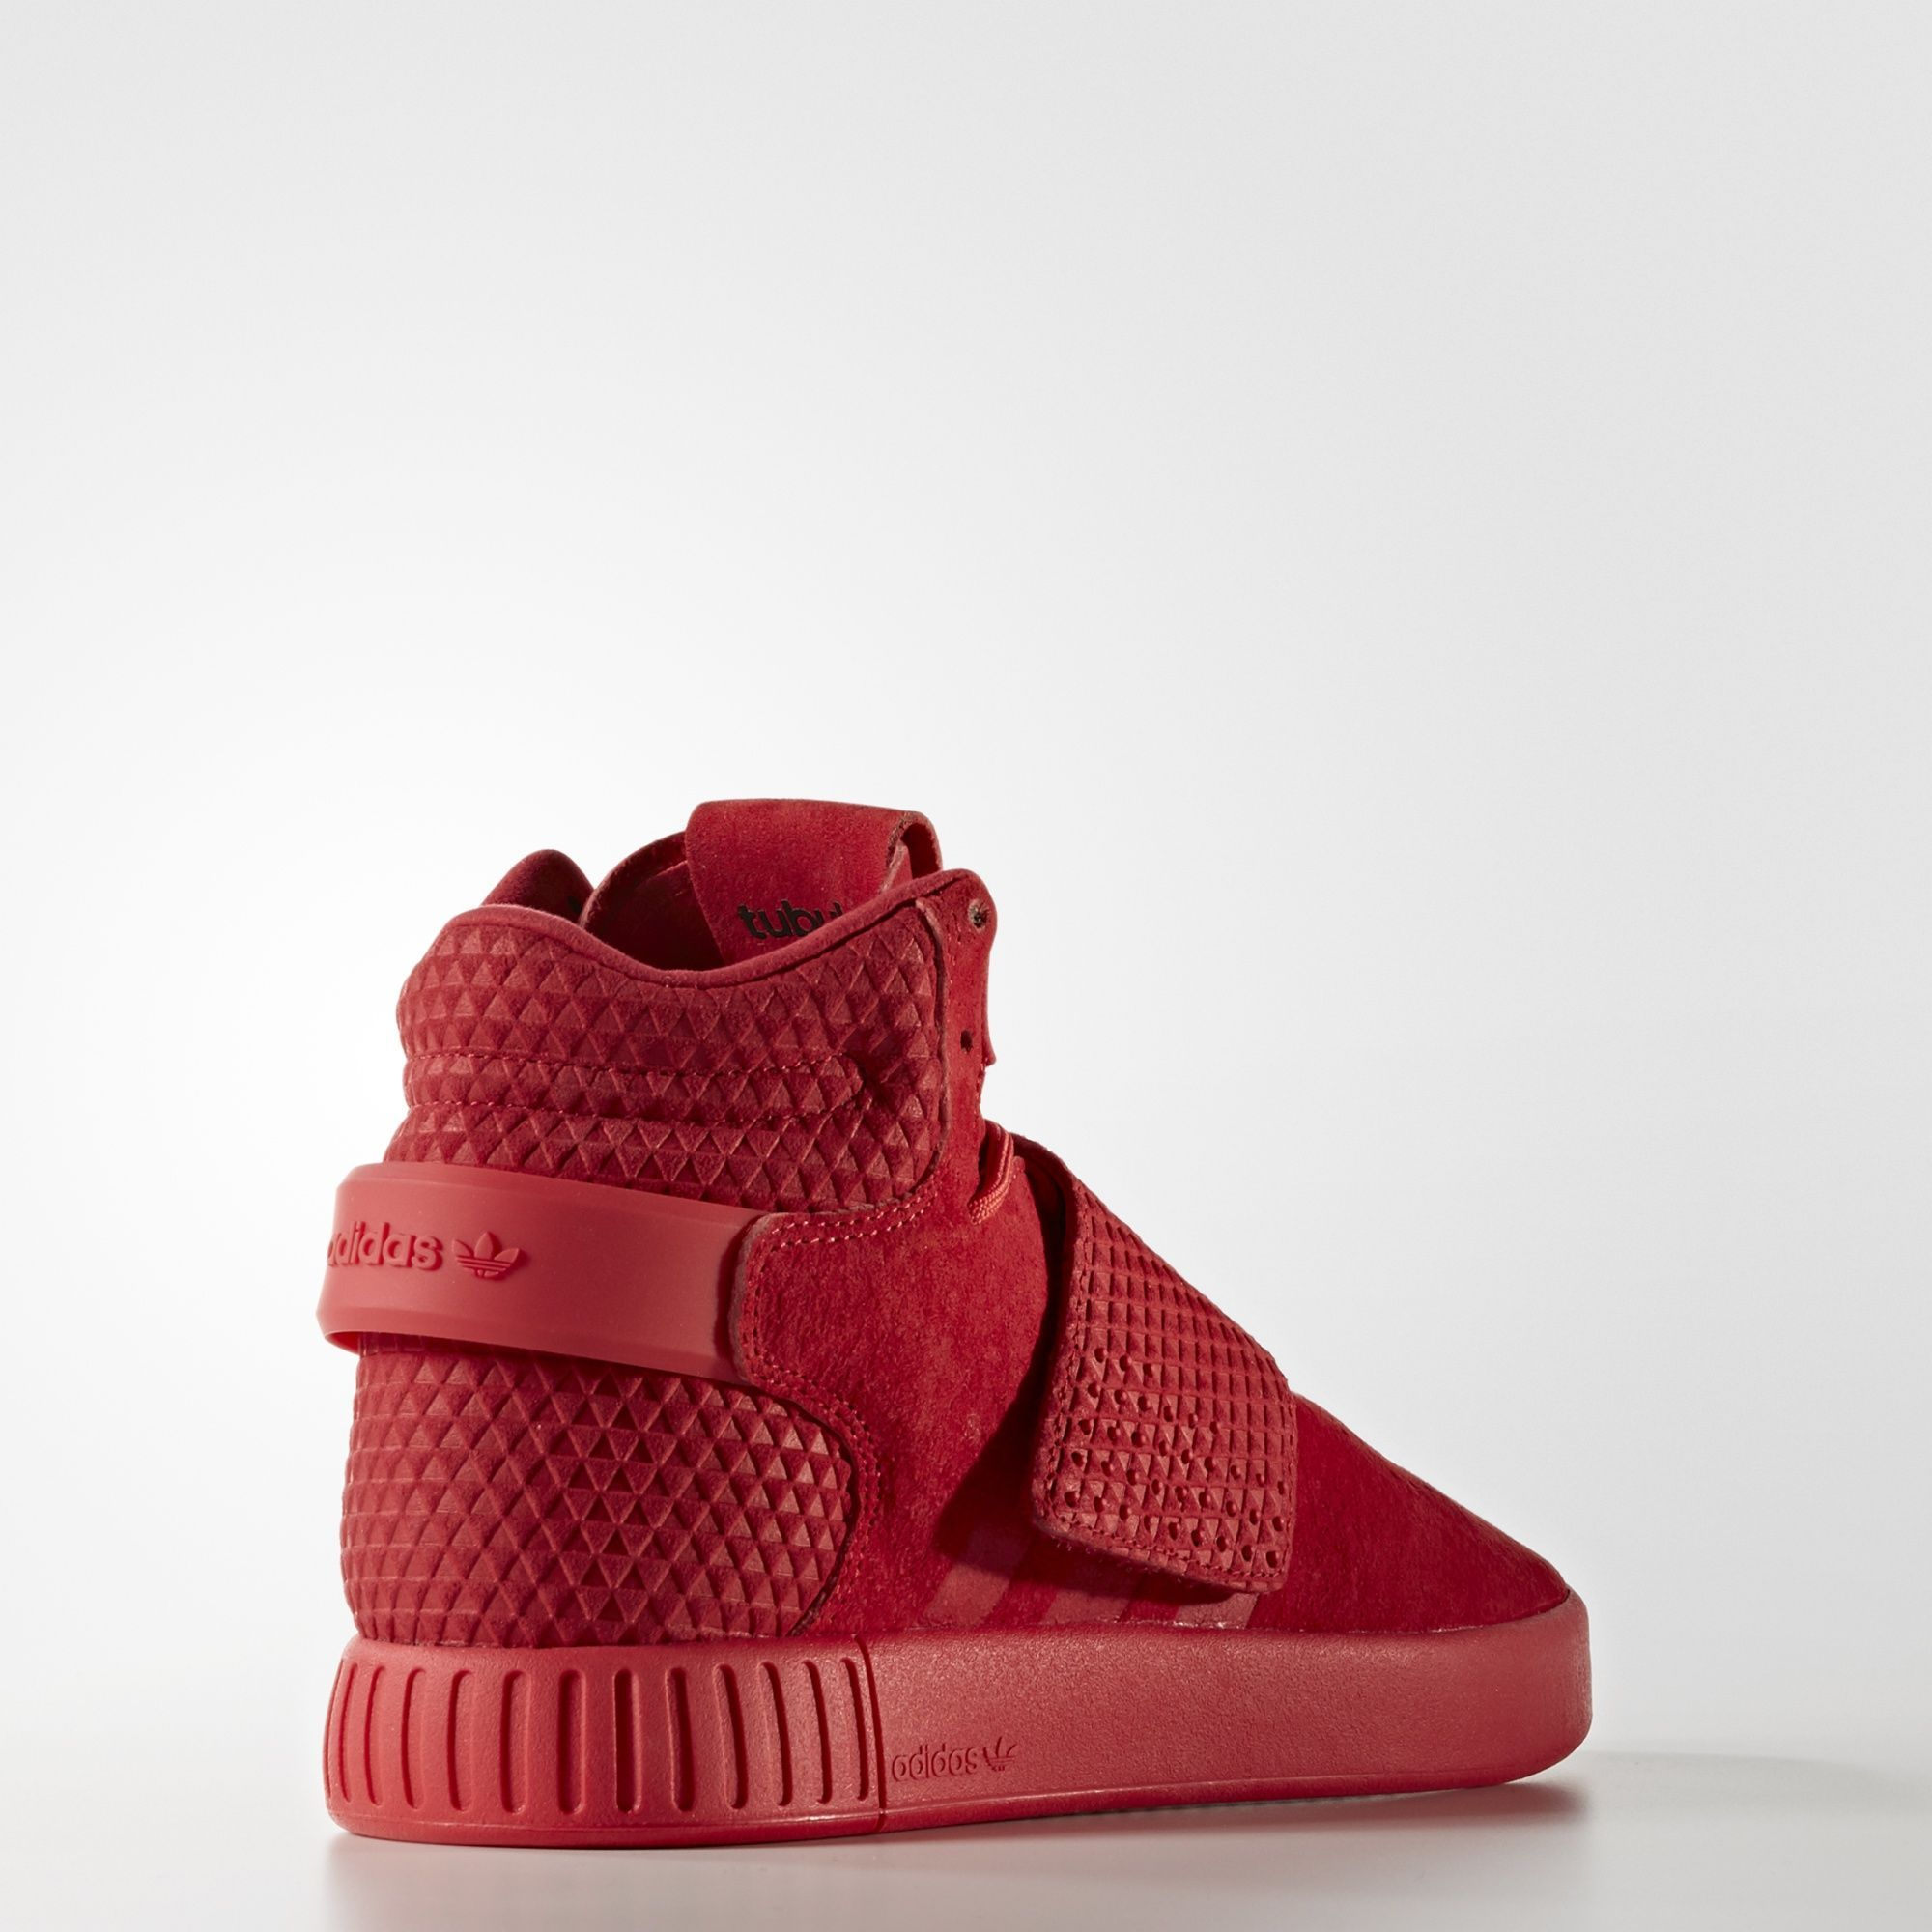 on sale d1e10 92d7e adidas - Tubular Invader Strap Triple Red Shoes | Awesome Adidas ...